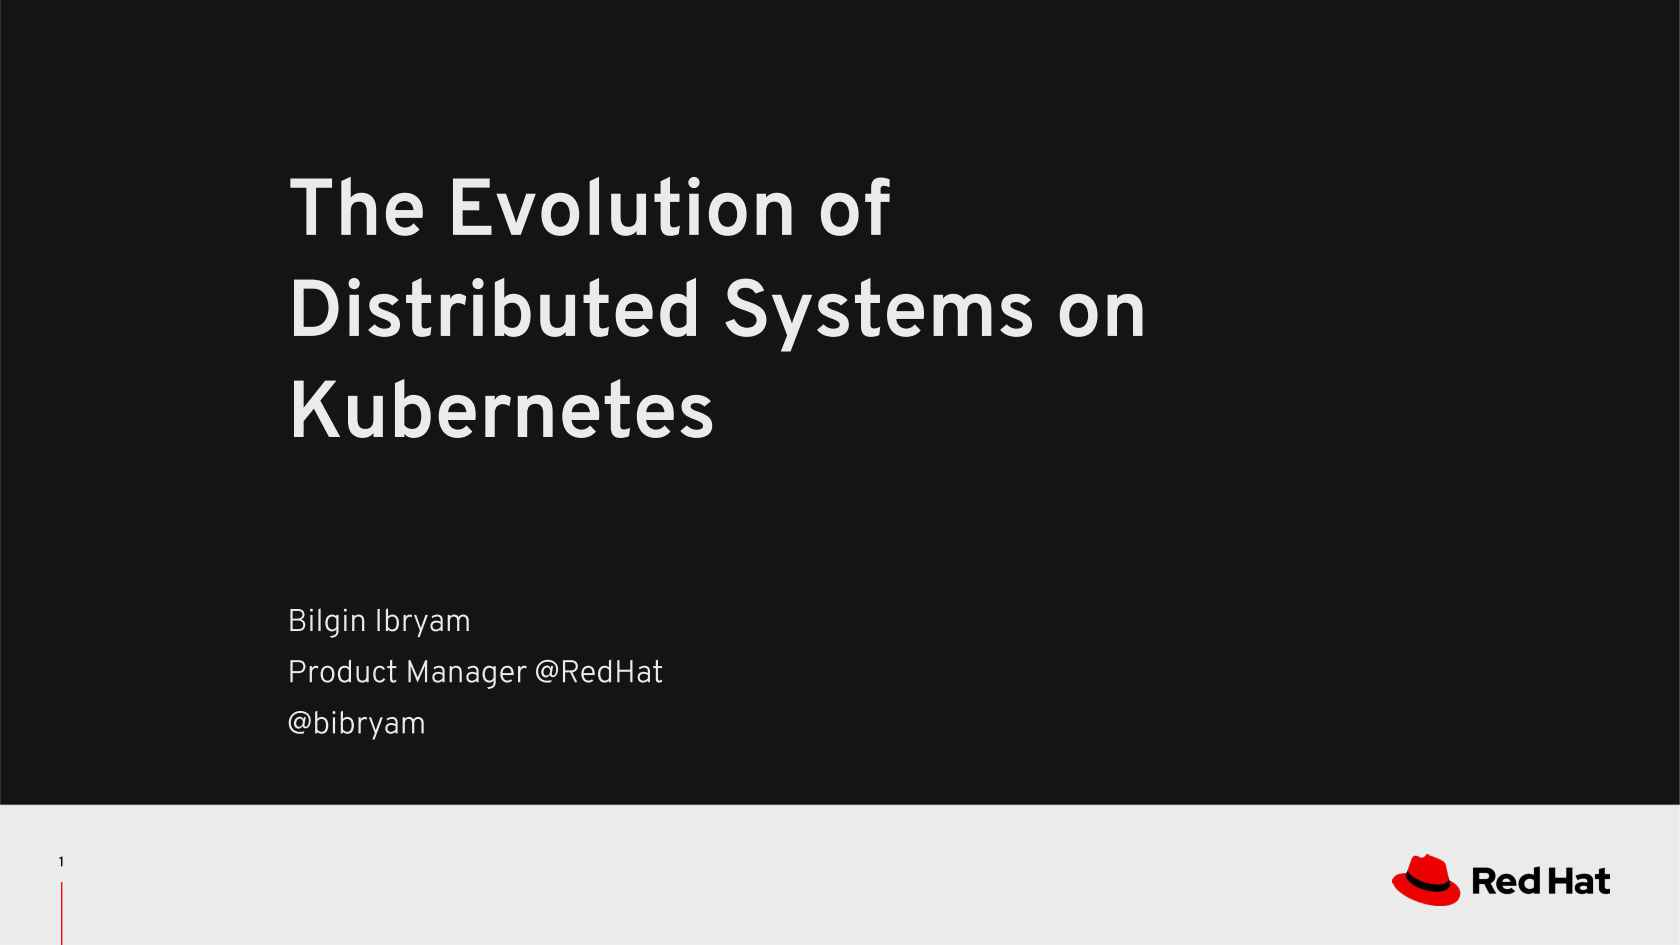 The Evolution Of Distributed Systems On Kubernetes